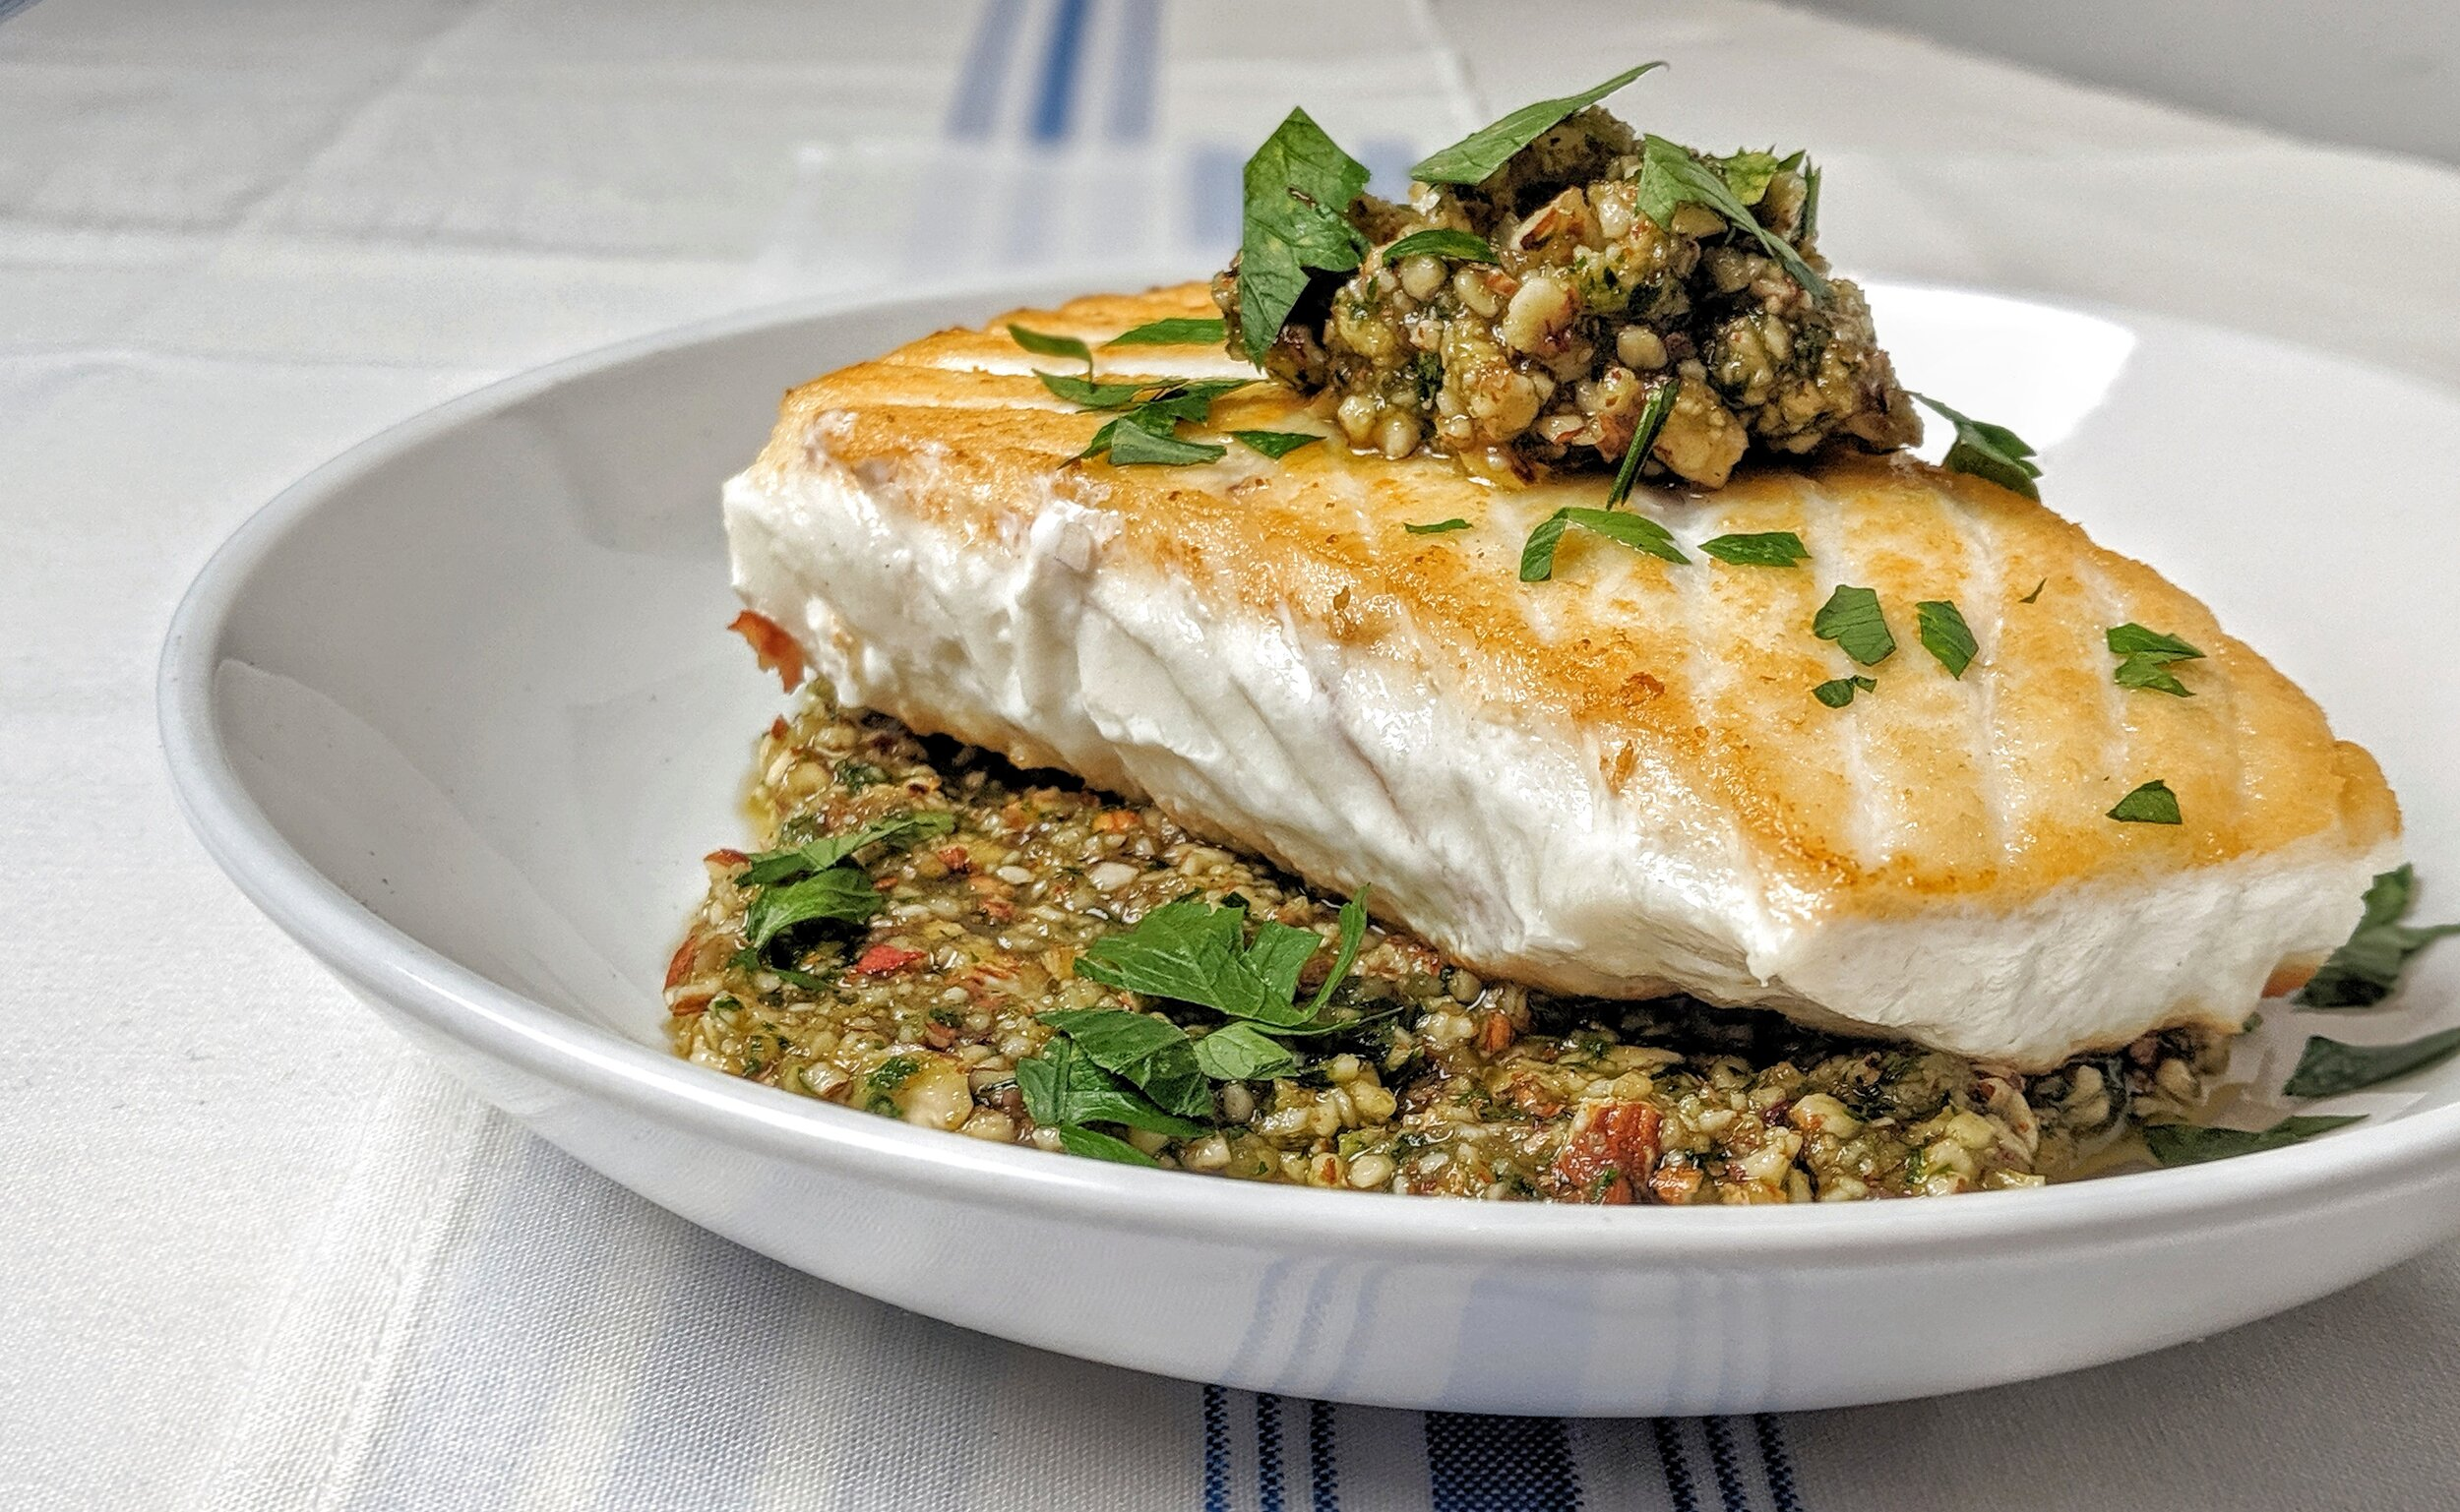 """What We're Cooking - We recently got the pleasure of participating in the Sitka Salmon Shares annual recipe contest as judges! We made Halibut with Almond & Parsley Pesto.If you haven't tried Sitka Salmon Shares yet use the code """"MMJD19"""" for $25 off your order.Recipe for Halibut with Almond & Parsley PestoIngredients:For the Halibut1 fillet Halibut, cut into 1 inch pieces1 tablespoon coconut oilFor the Sauce1/3 cup of almonds toasted until fragrant and has a little color then let cool1 teaspoons anchovy paste2 garlic cloves2 tablespoons good quality coconut oil1/3 cup extra virgin olive oil1 1/2 teaspoons red wine vinegar2 tablespoons of flat leaf parsley1 teaspoon red chili flakessea salt and fresh ground pepperInstructions:Sear the Halibut in a saute pan until cooked through.Add all of the Sauce ingredients to a food processor and process until somewhat smooth.Serve the sauce over the fish."""